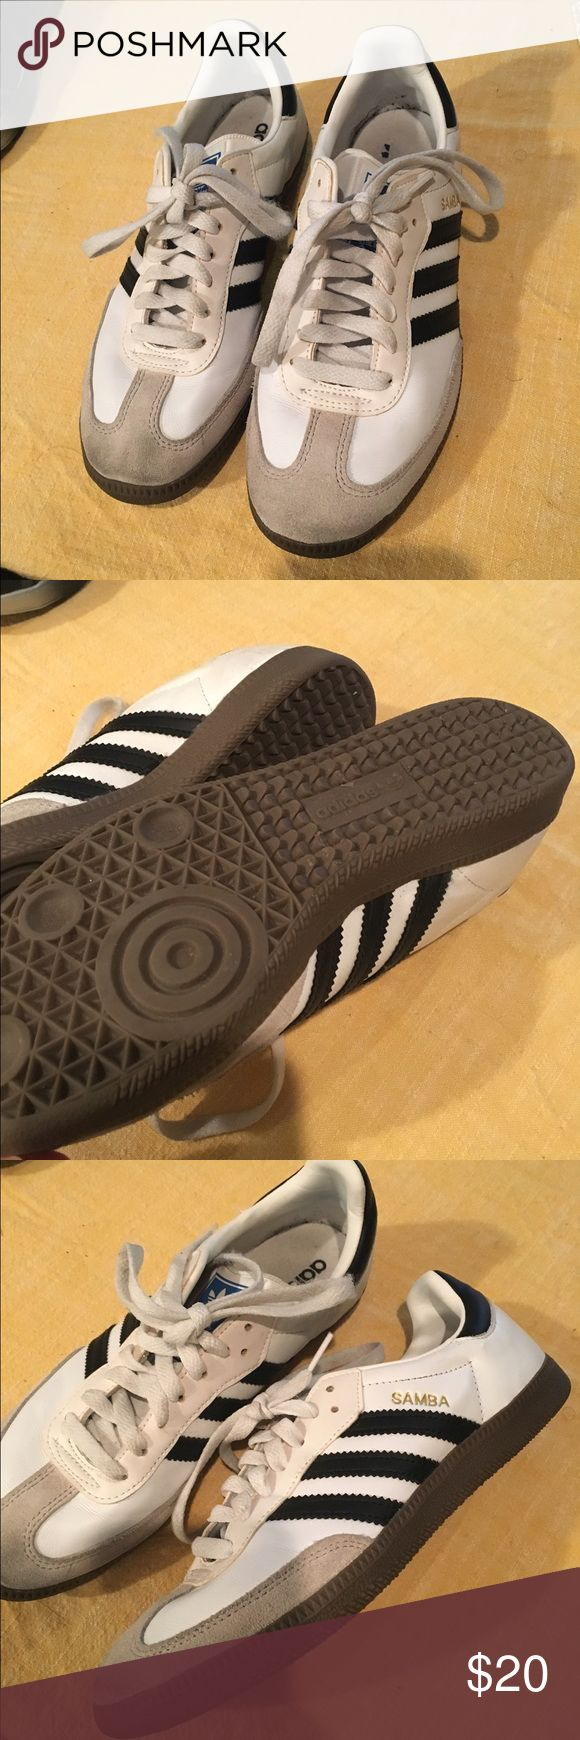 adidas Samba sneakers Shows some signs of wear on suede toe caps and insoles but all around good condition. Women's 9 / Men's 7 / fits like an 8.5 - 9 for ladies. Adidas Shoes Sneakers